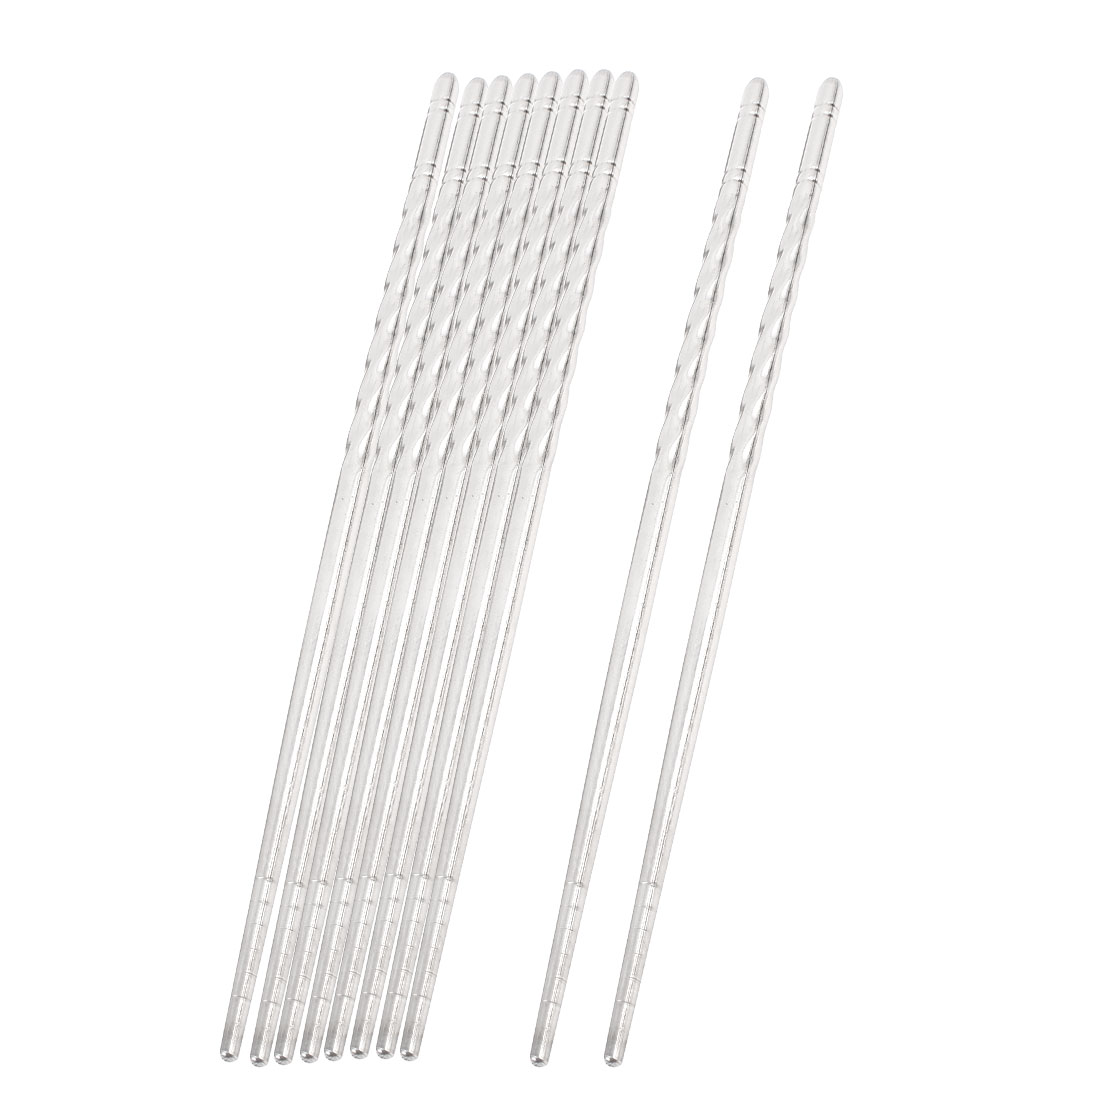 Home Kitchen Stainless Steel Chopsticks Tableware Silver Tone 22.5cm 5 Pairs